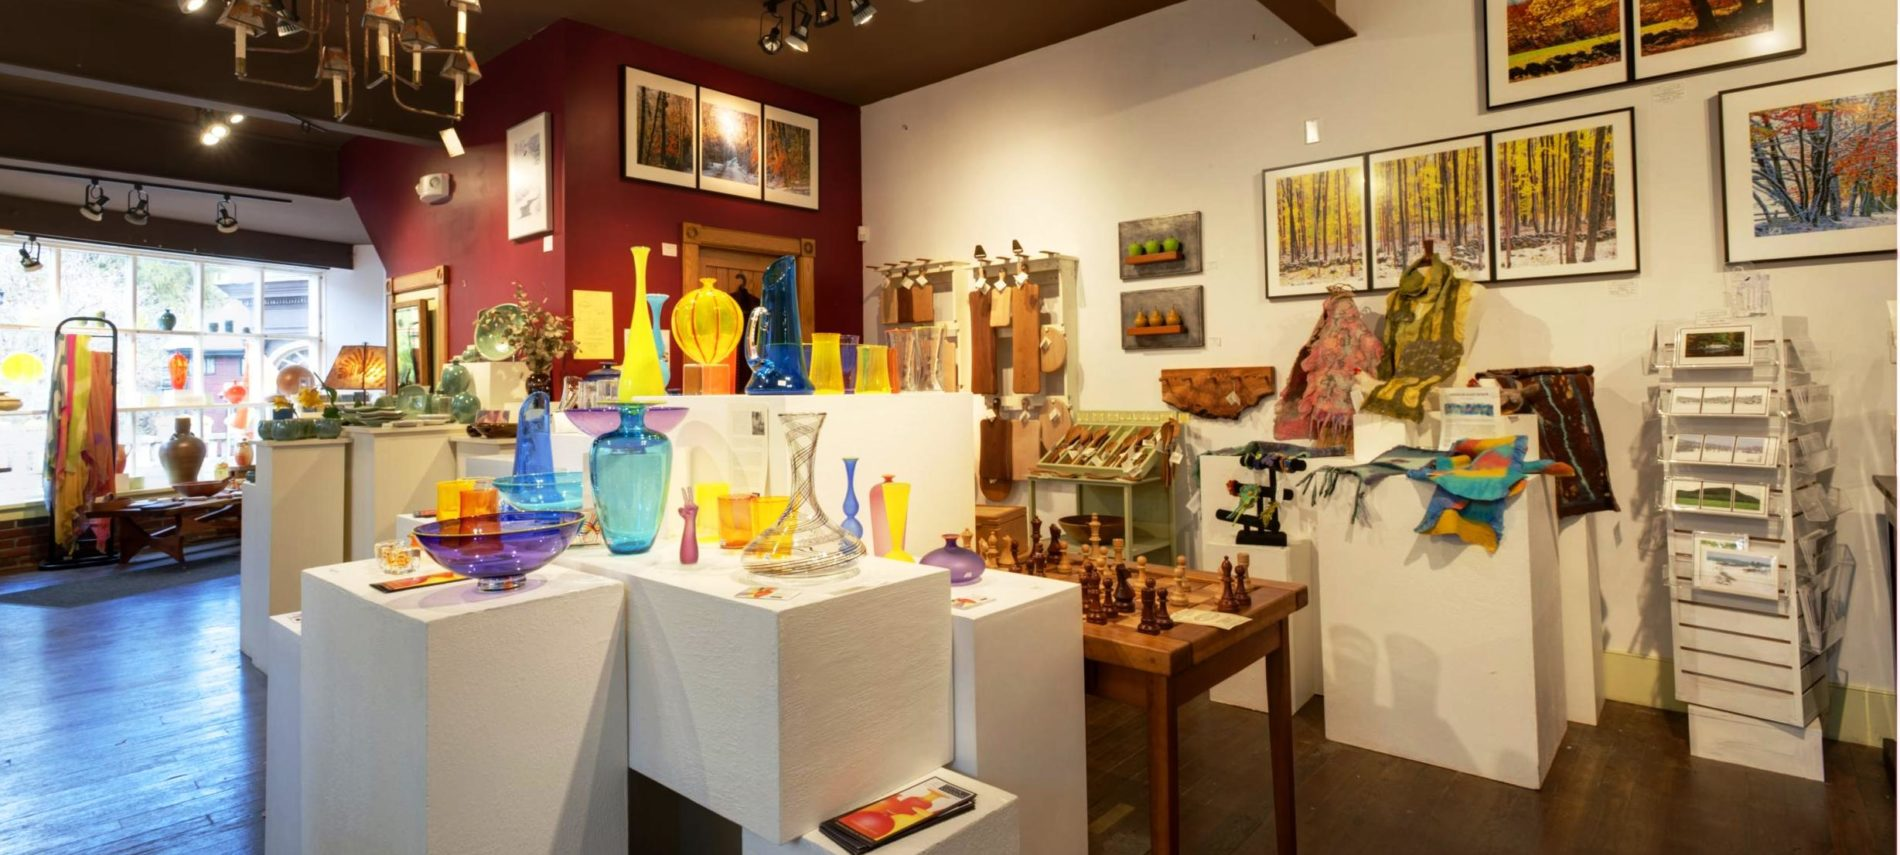 Variety of hand crafted glassware, wooded items, and paintings on display at a gallery